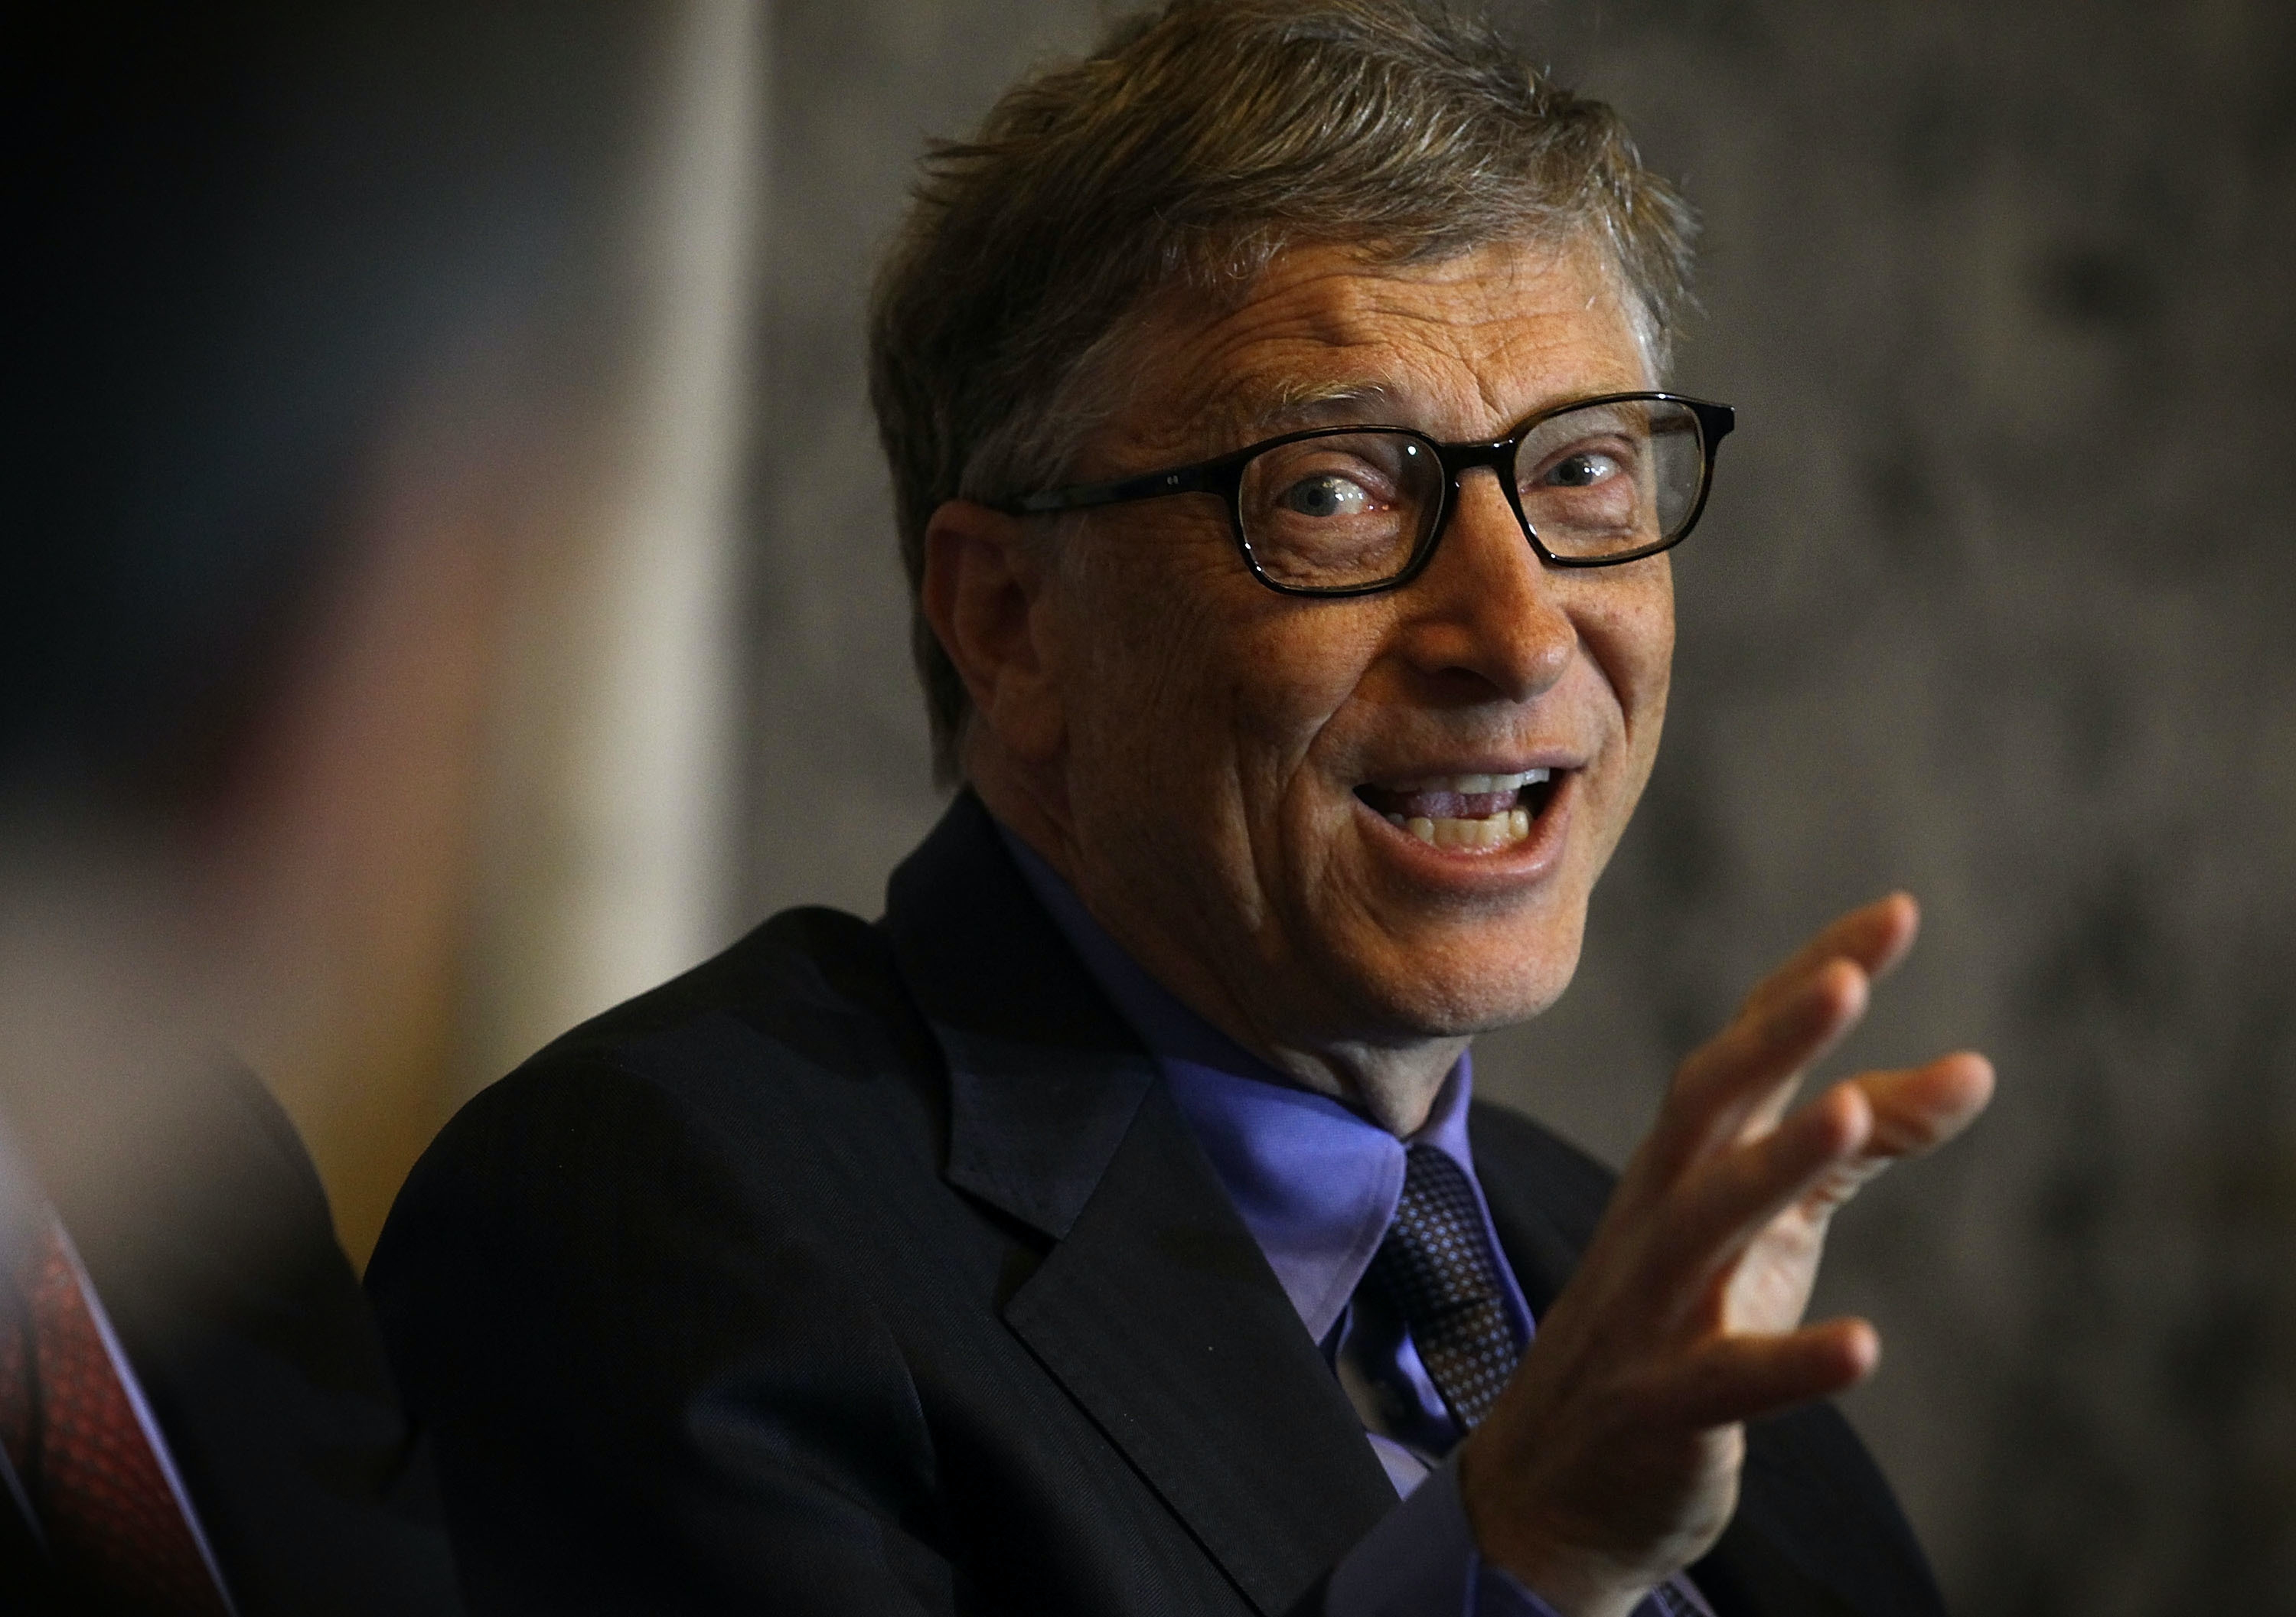 Bill Gates, Co-Founder of both Microsoft and the Bill & Melinda Gates Foundation, wants to eradicate malaria, something that may prove easier with super-fast quantum computing.